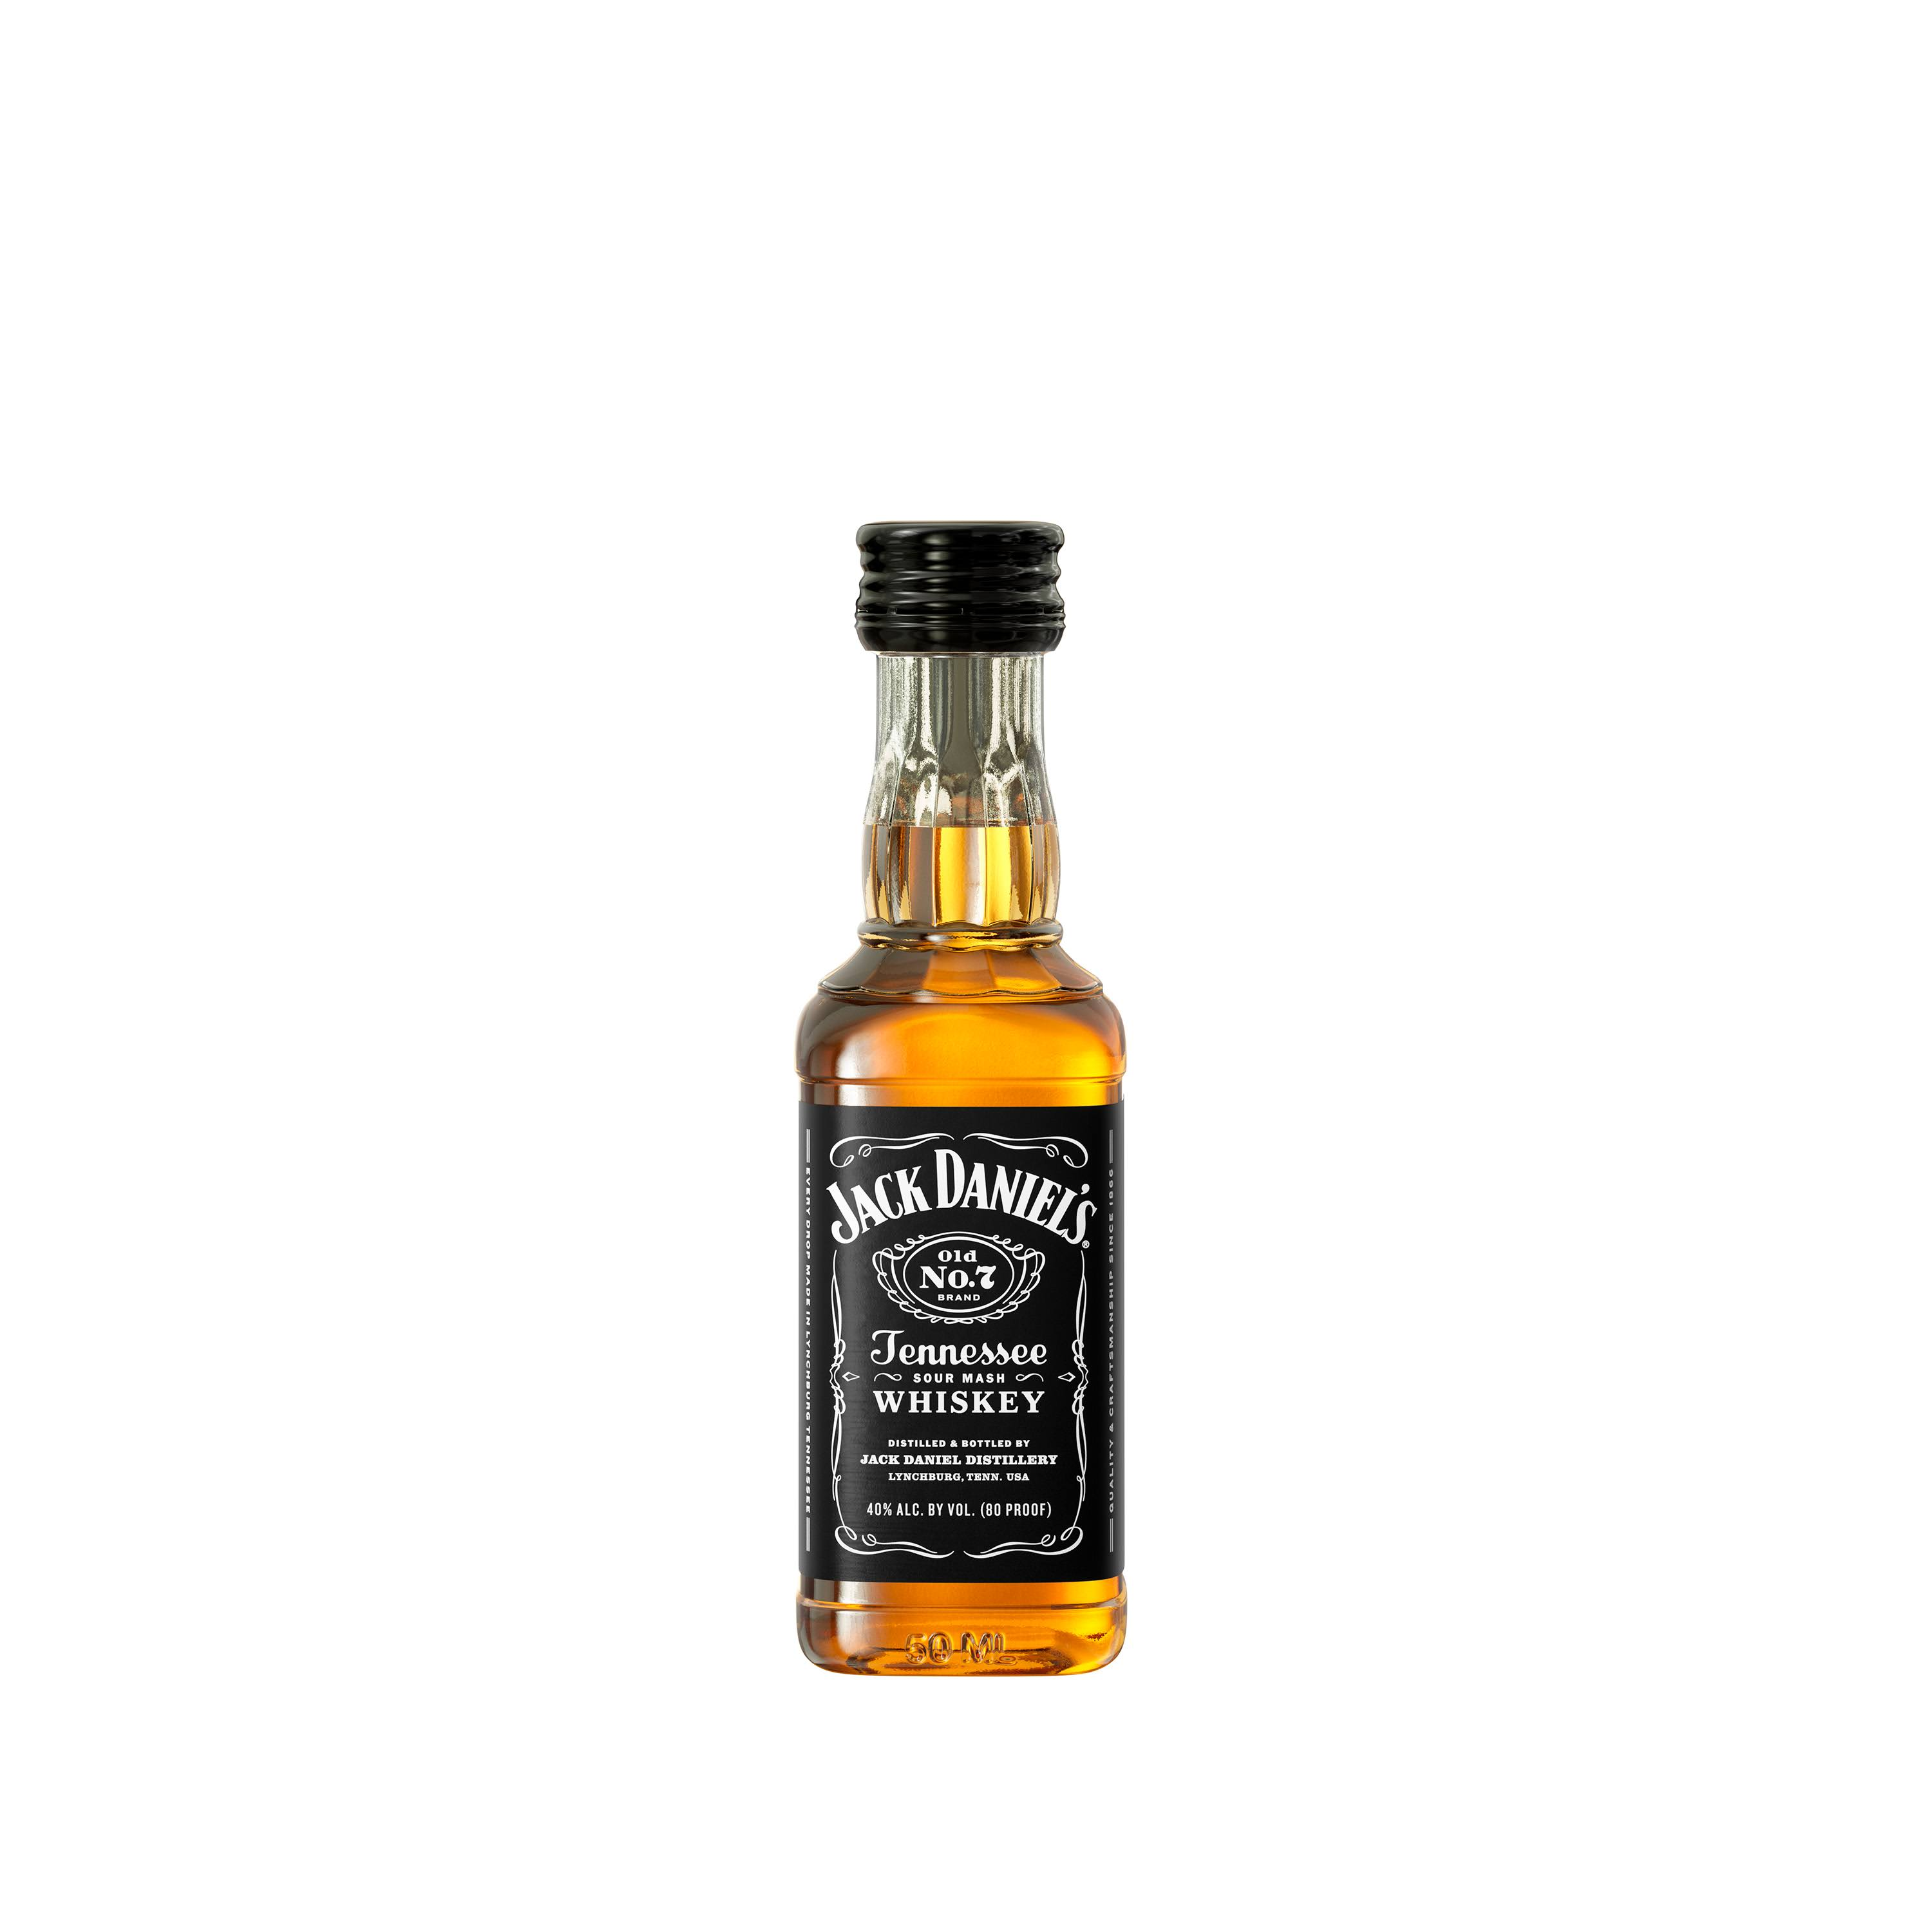 Jack Daniels Old No. 7 Whiskey, Tennessee Whiskey - 12 pack, 50 ml bottles